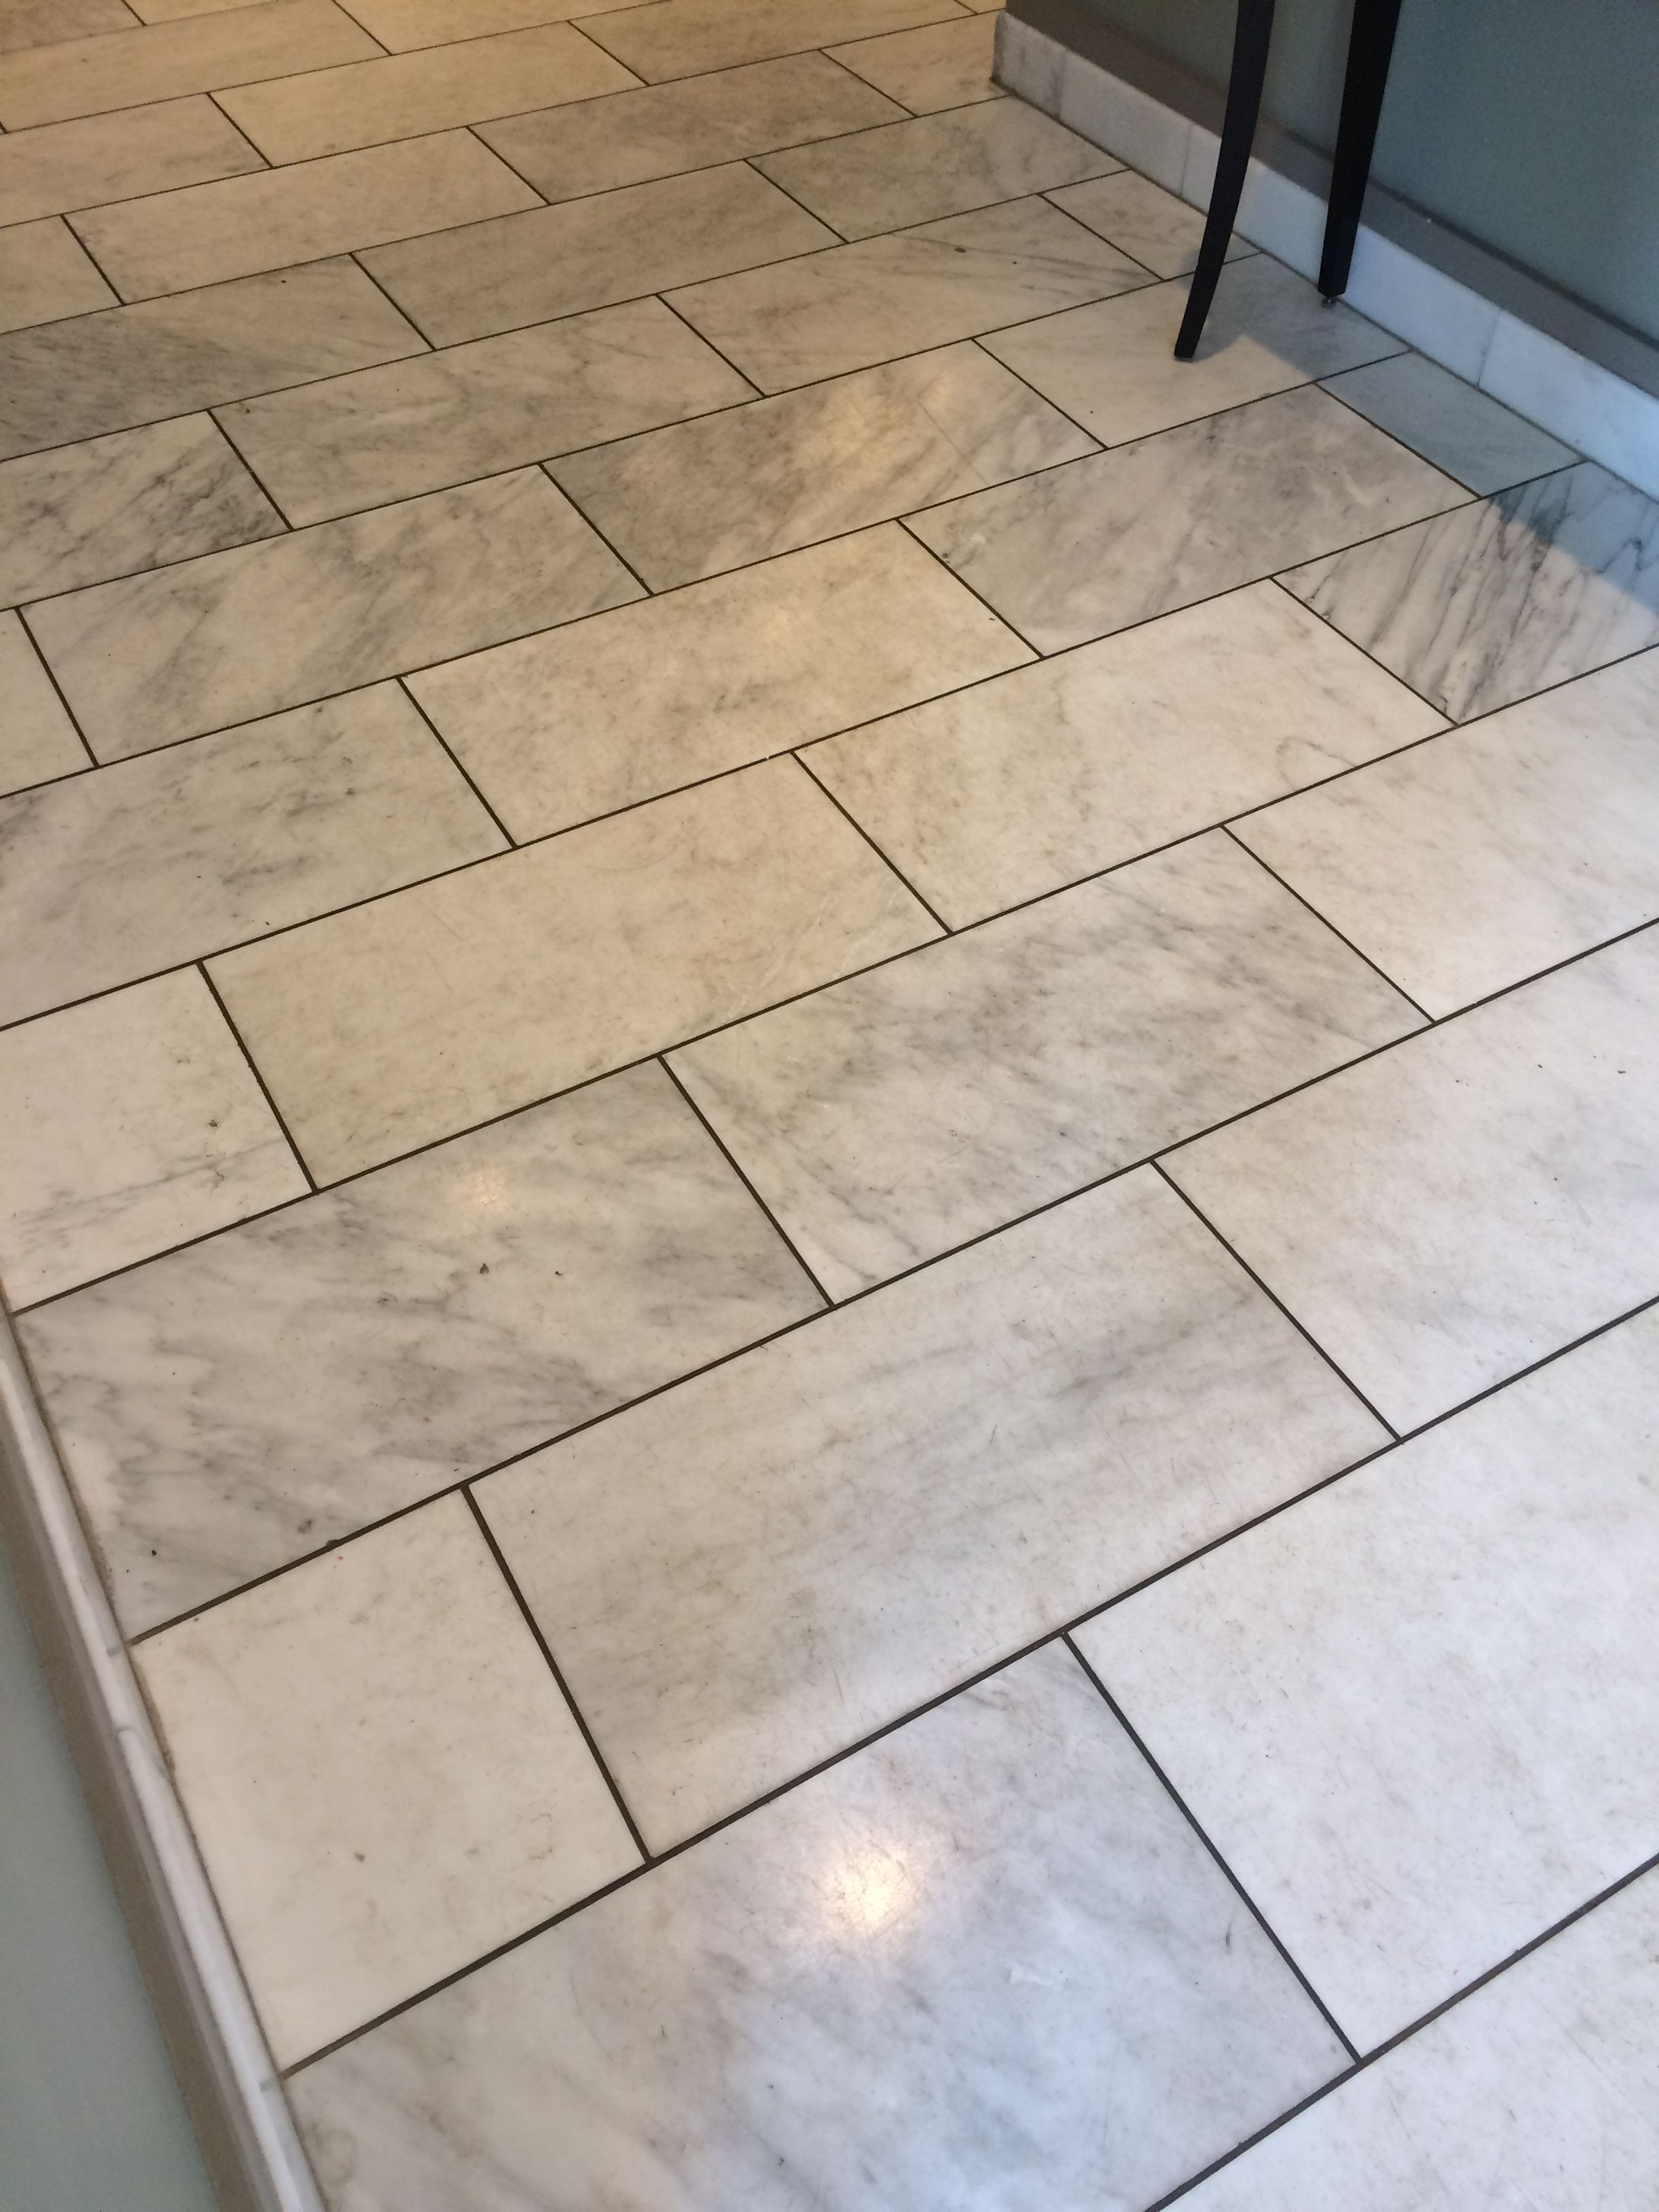 White And Gray Marble With Dark Gray Grout Floor Tile Grout White Tile Floor Grey Floor Tiles